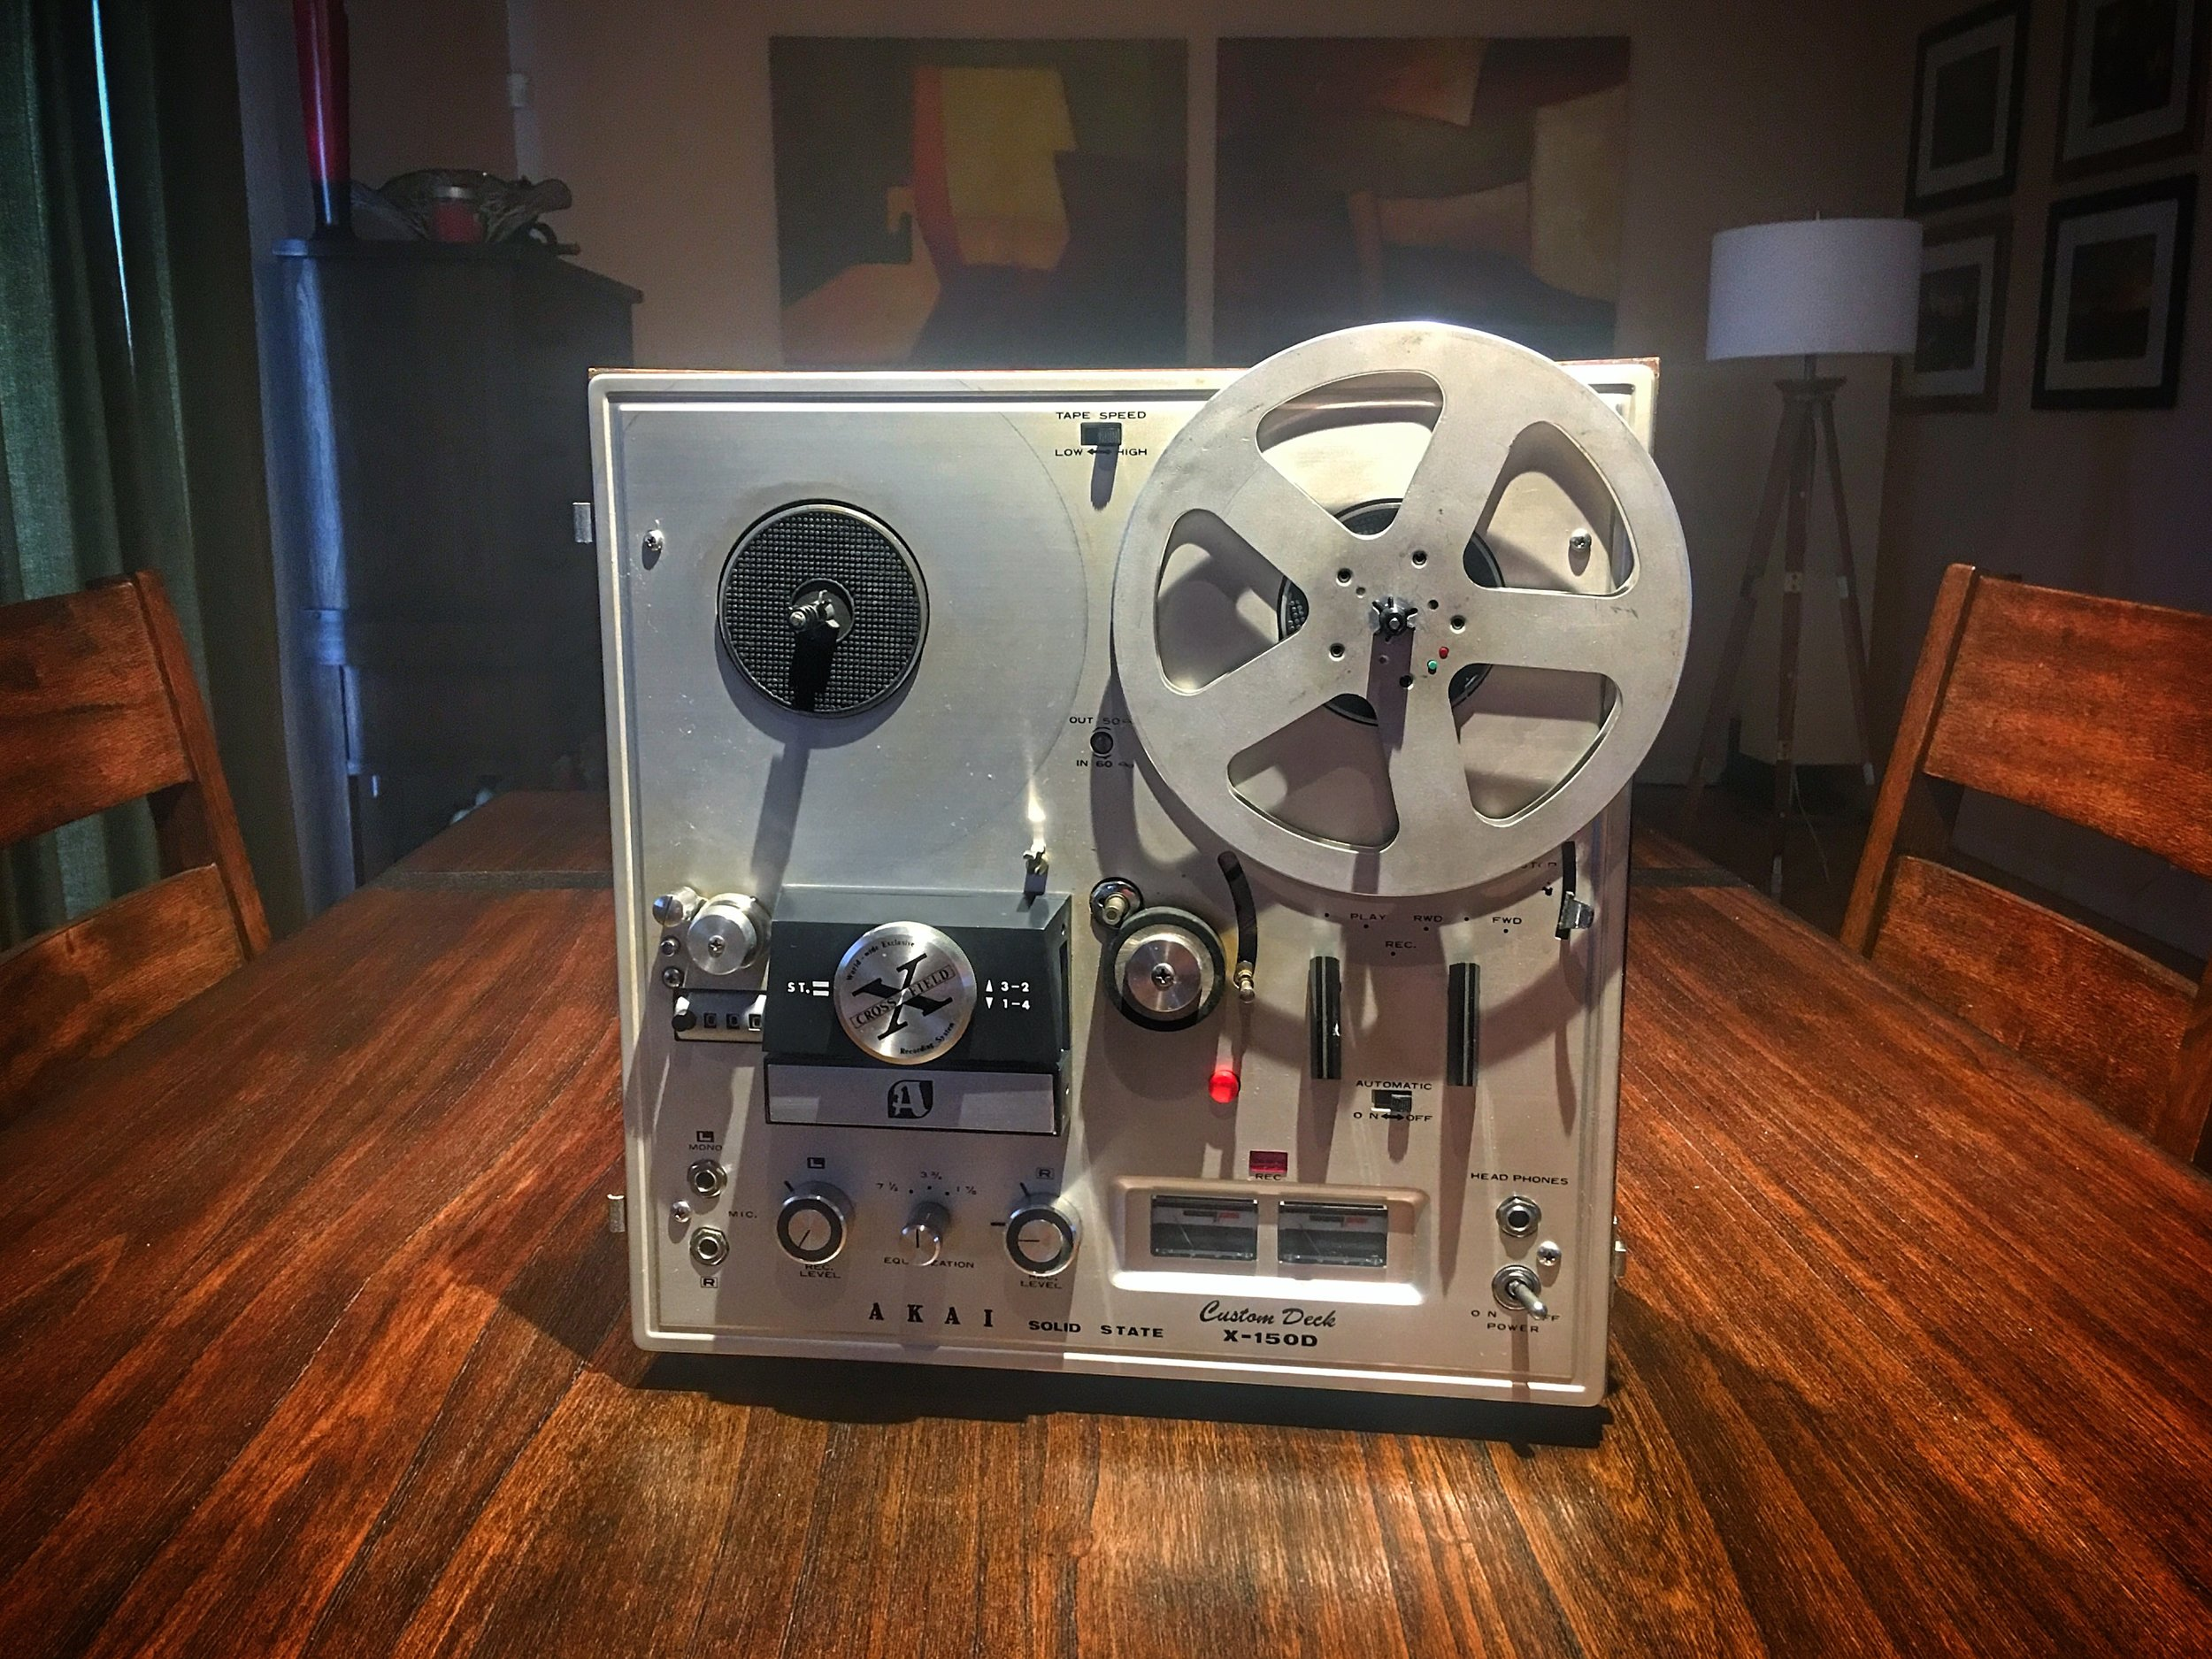 Restored 1969 Akai X-150D Reel to Reel